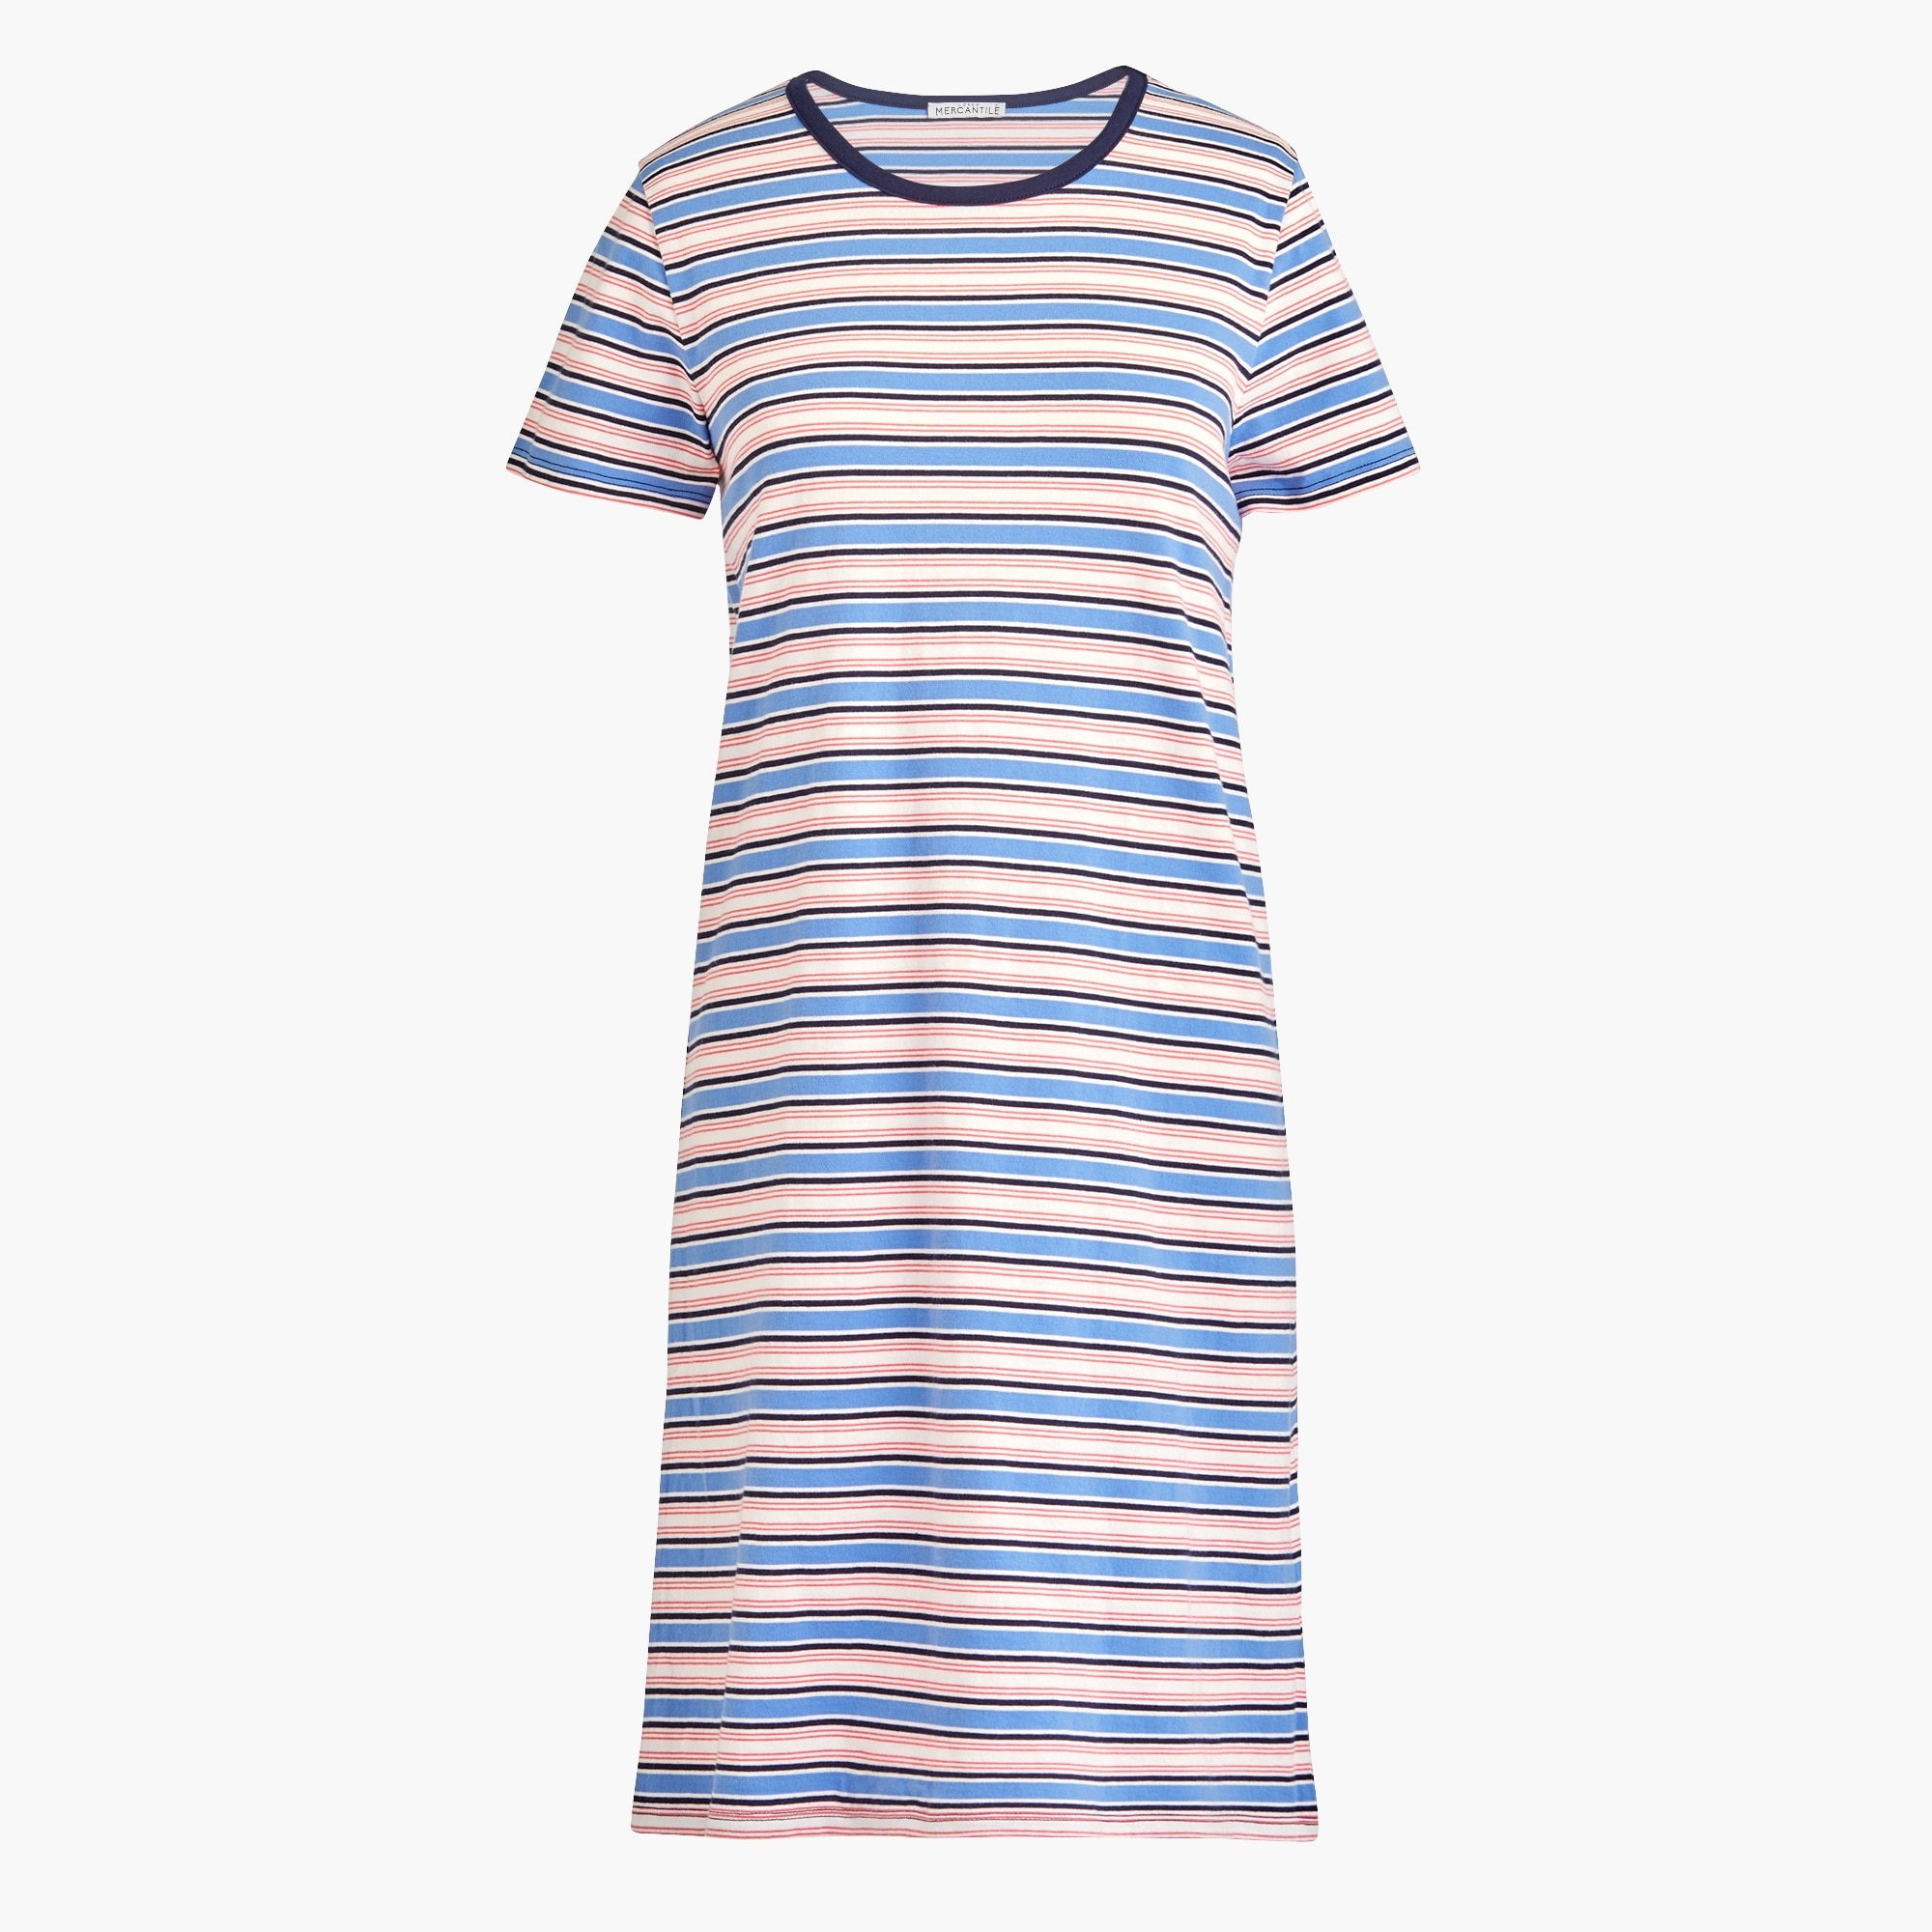 Image 1 for Striped T-shirt dress